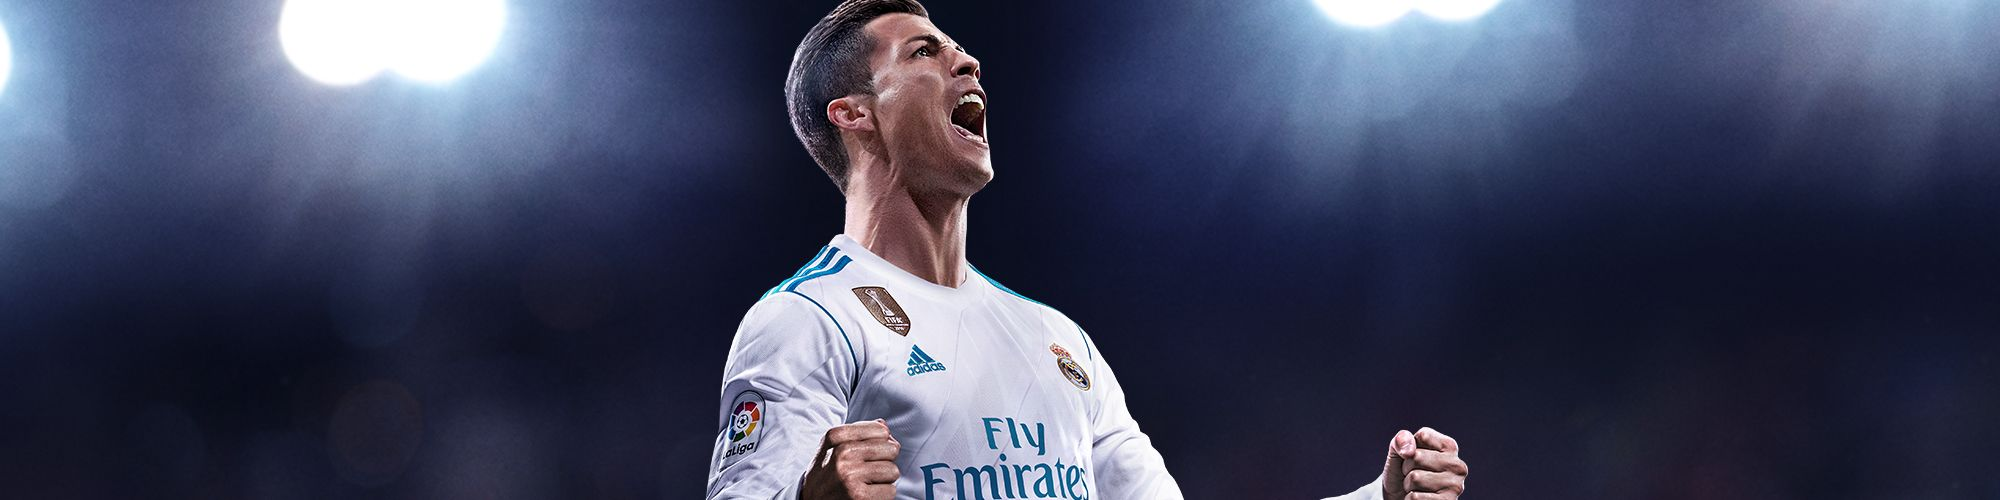 FIFA 18 technical specifications for laptop